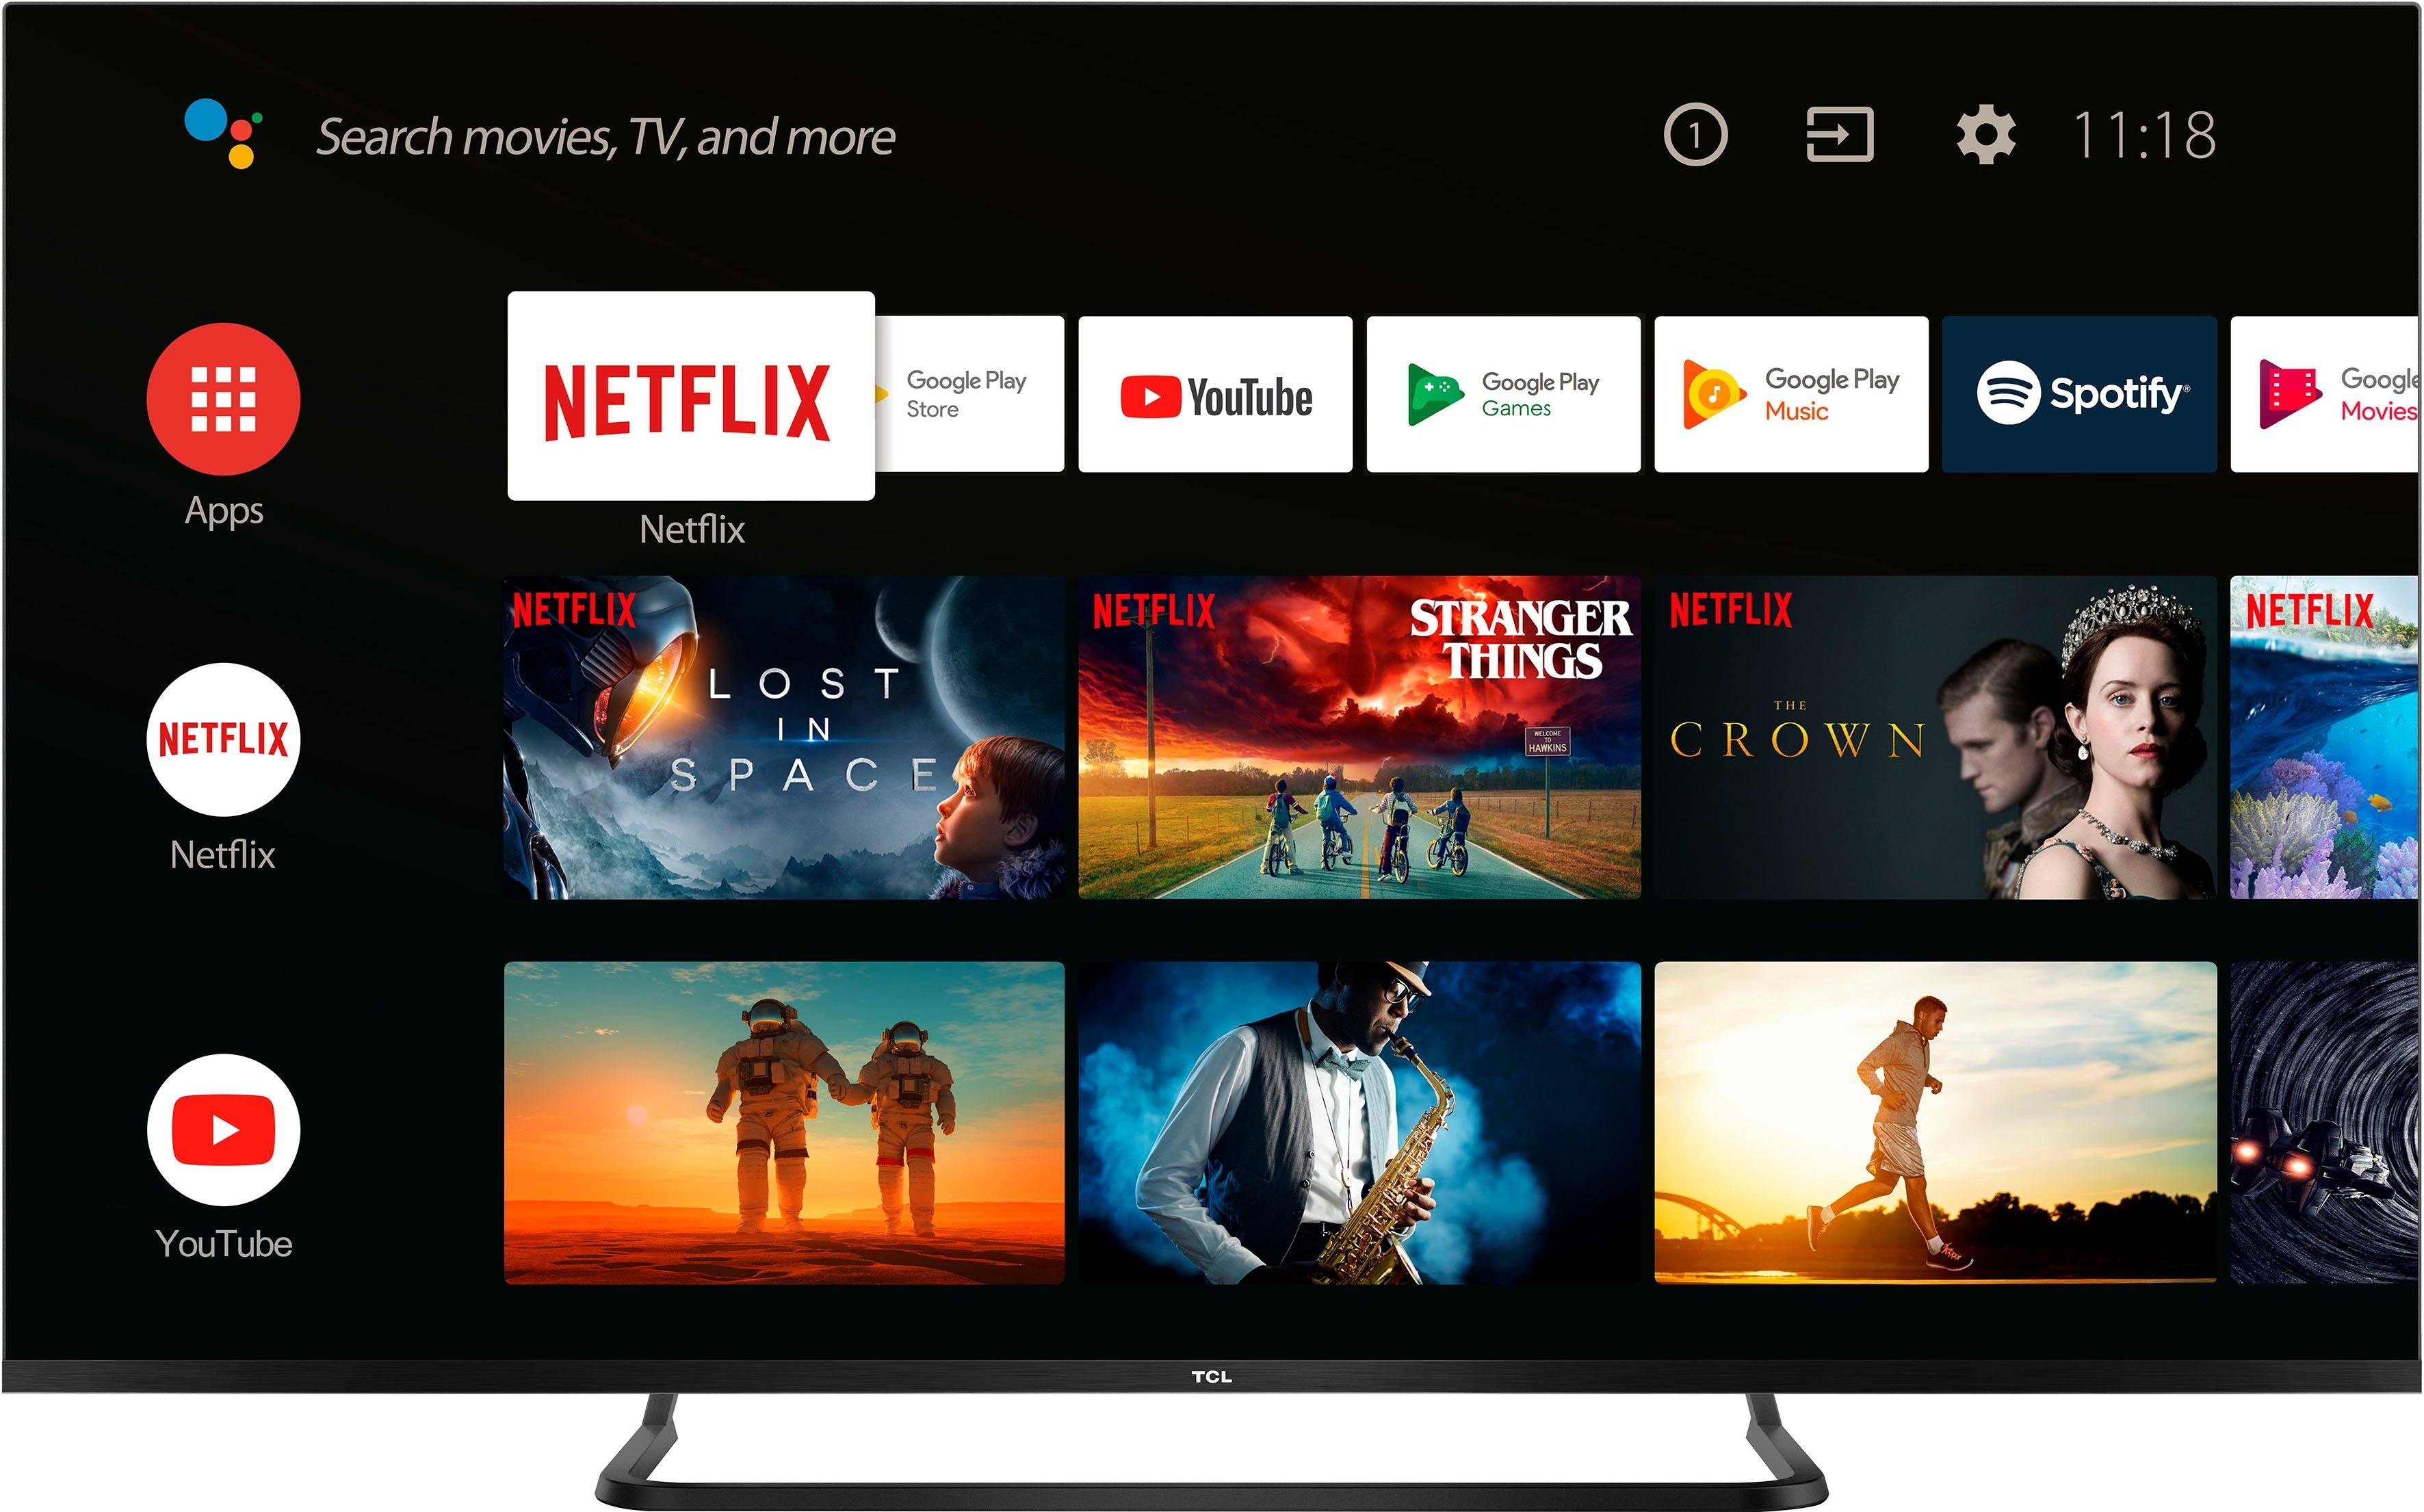 TCL 65EP680 led-tv (164 cm / 65 inch), 4K Ultra HD, smart-tv - gratis ruilen op otto.nl